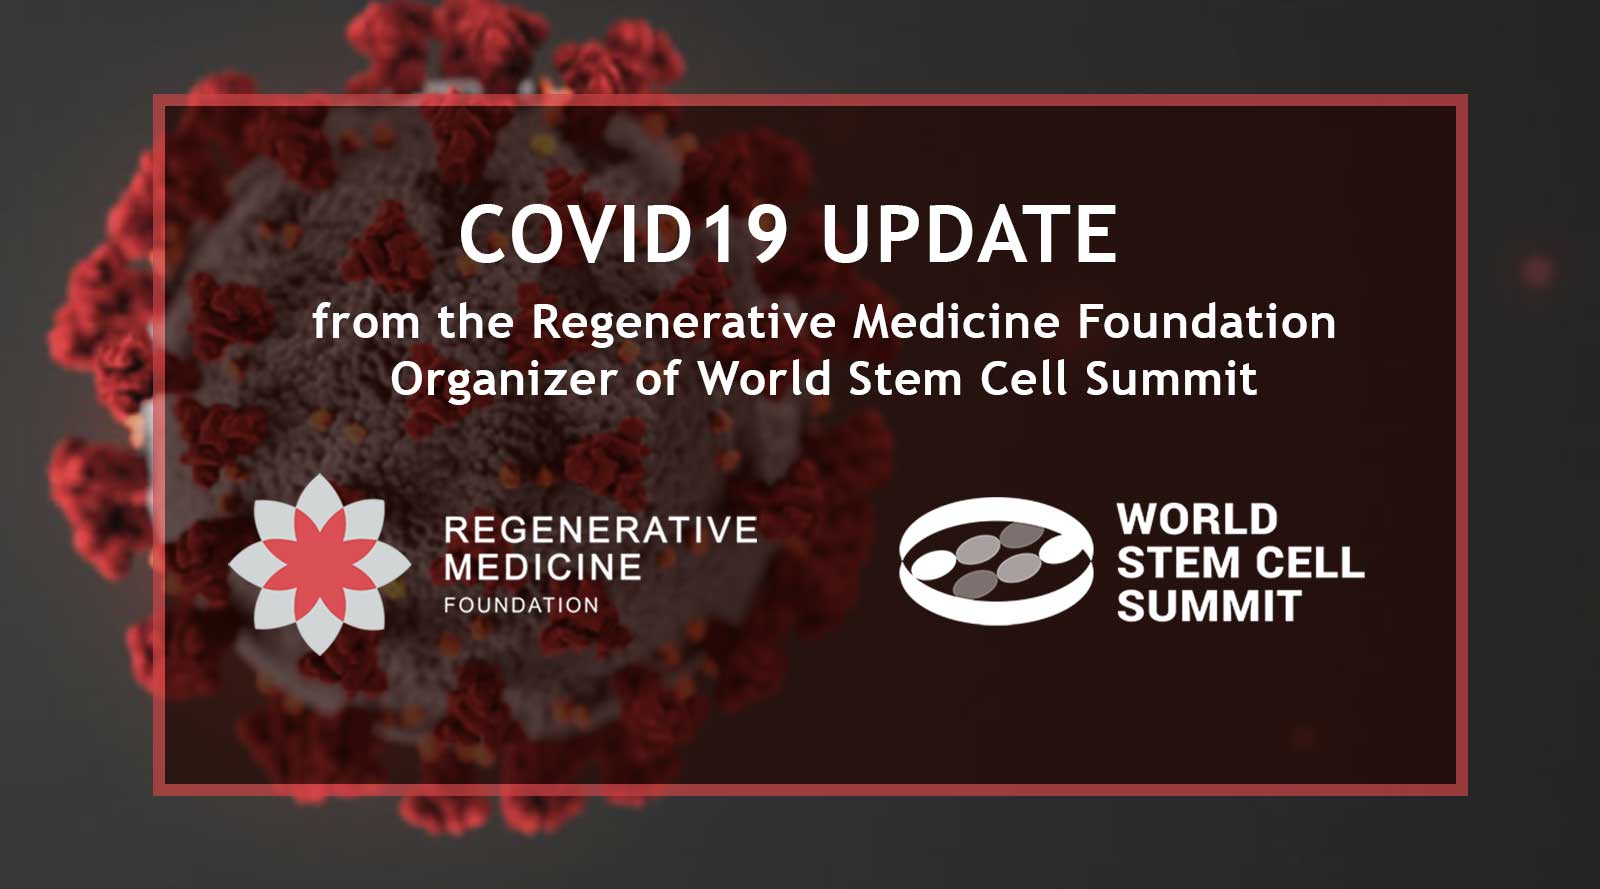 COVID19 Update from the Regenerative Medicine Foundation – Organizer for the World Stem Cell Summit